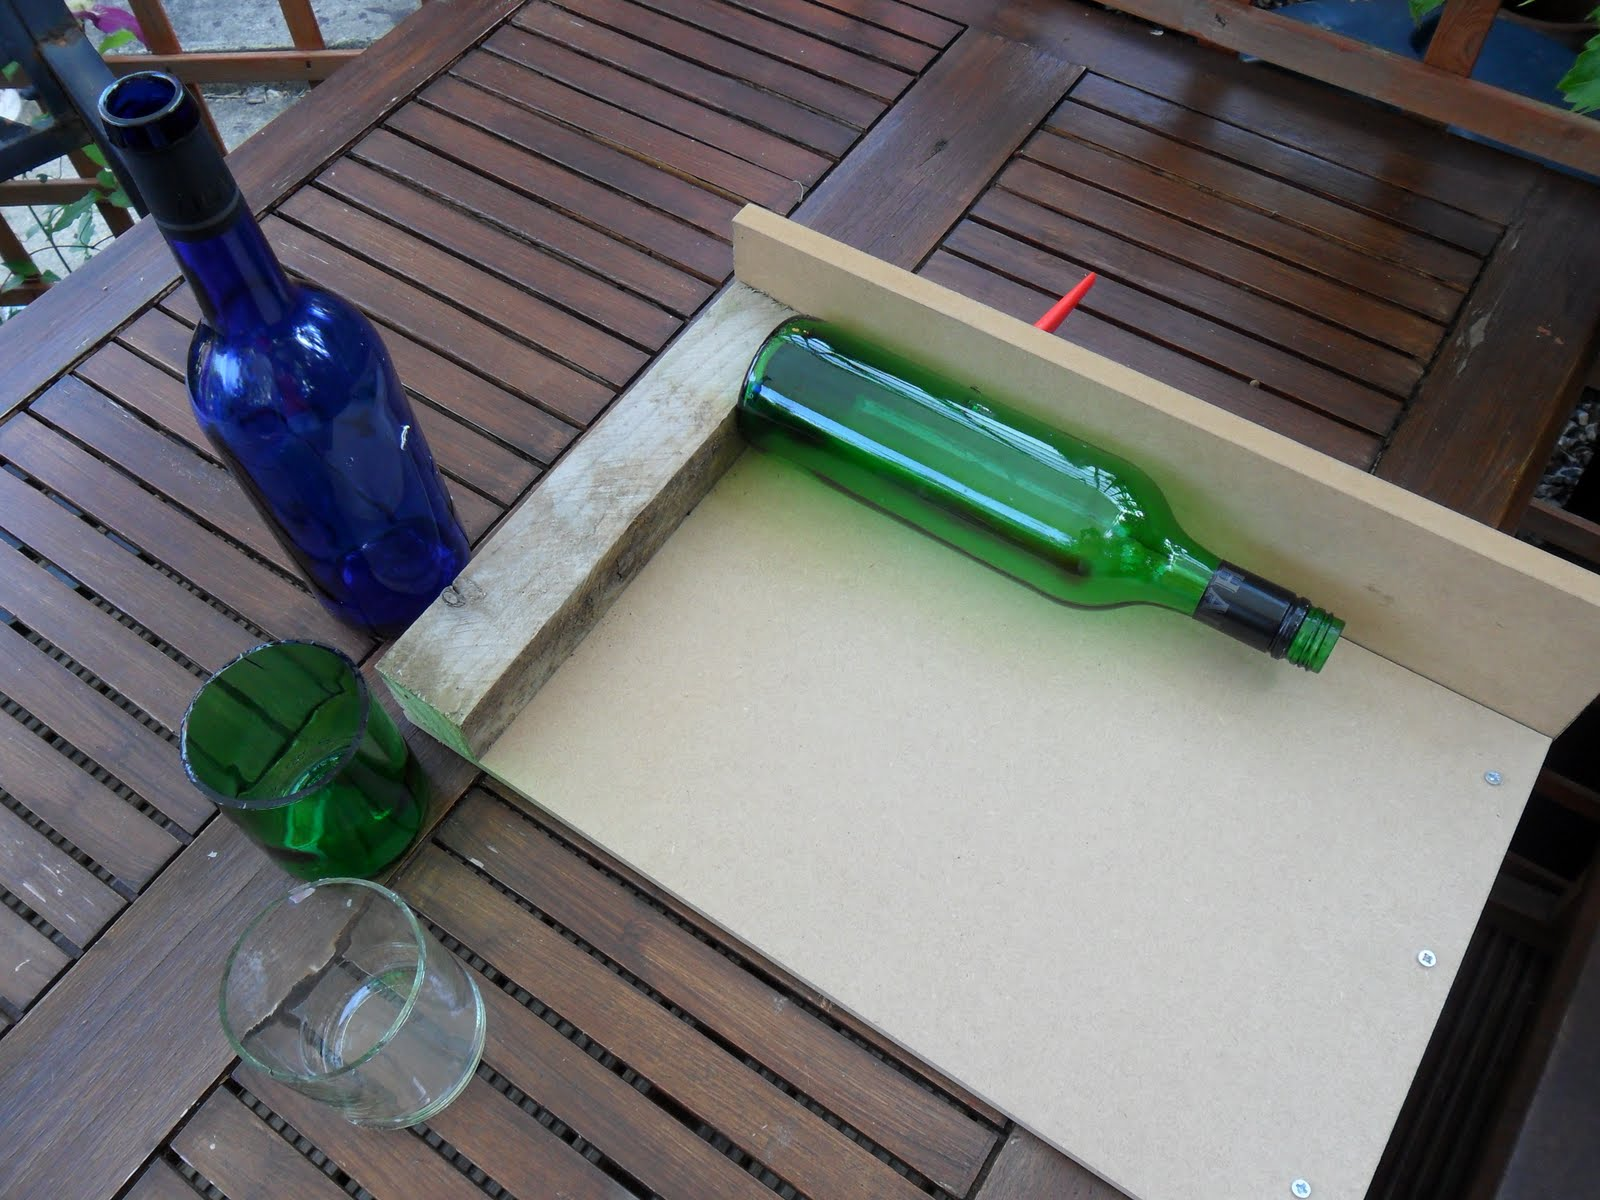 pics for homemade glass bottle cutter